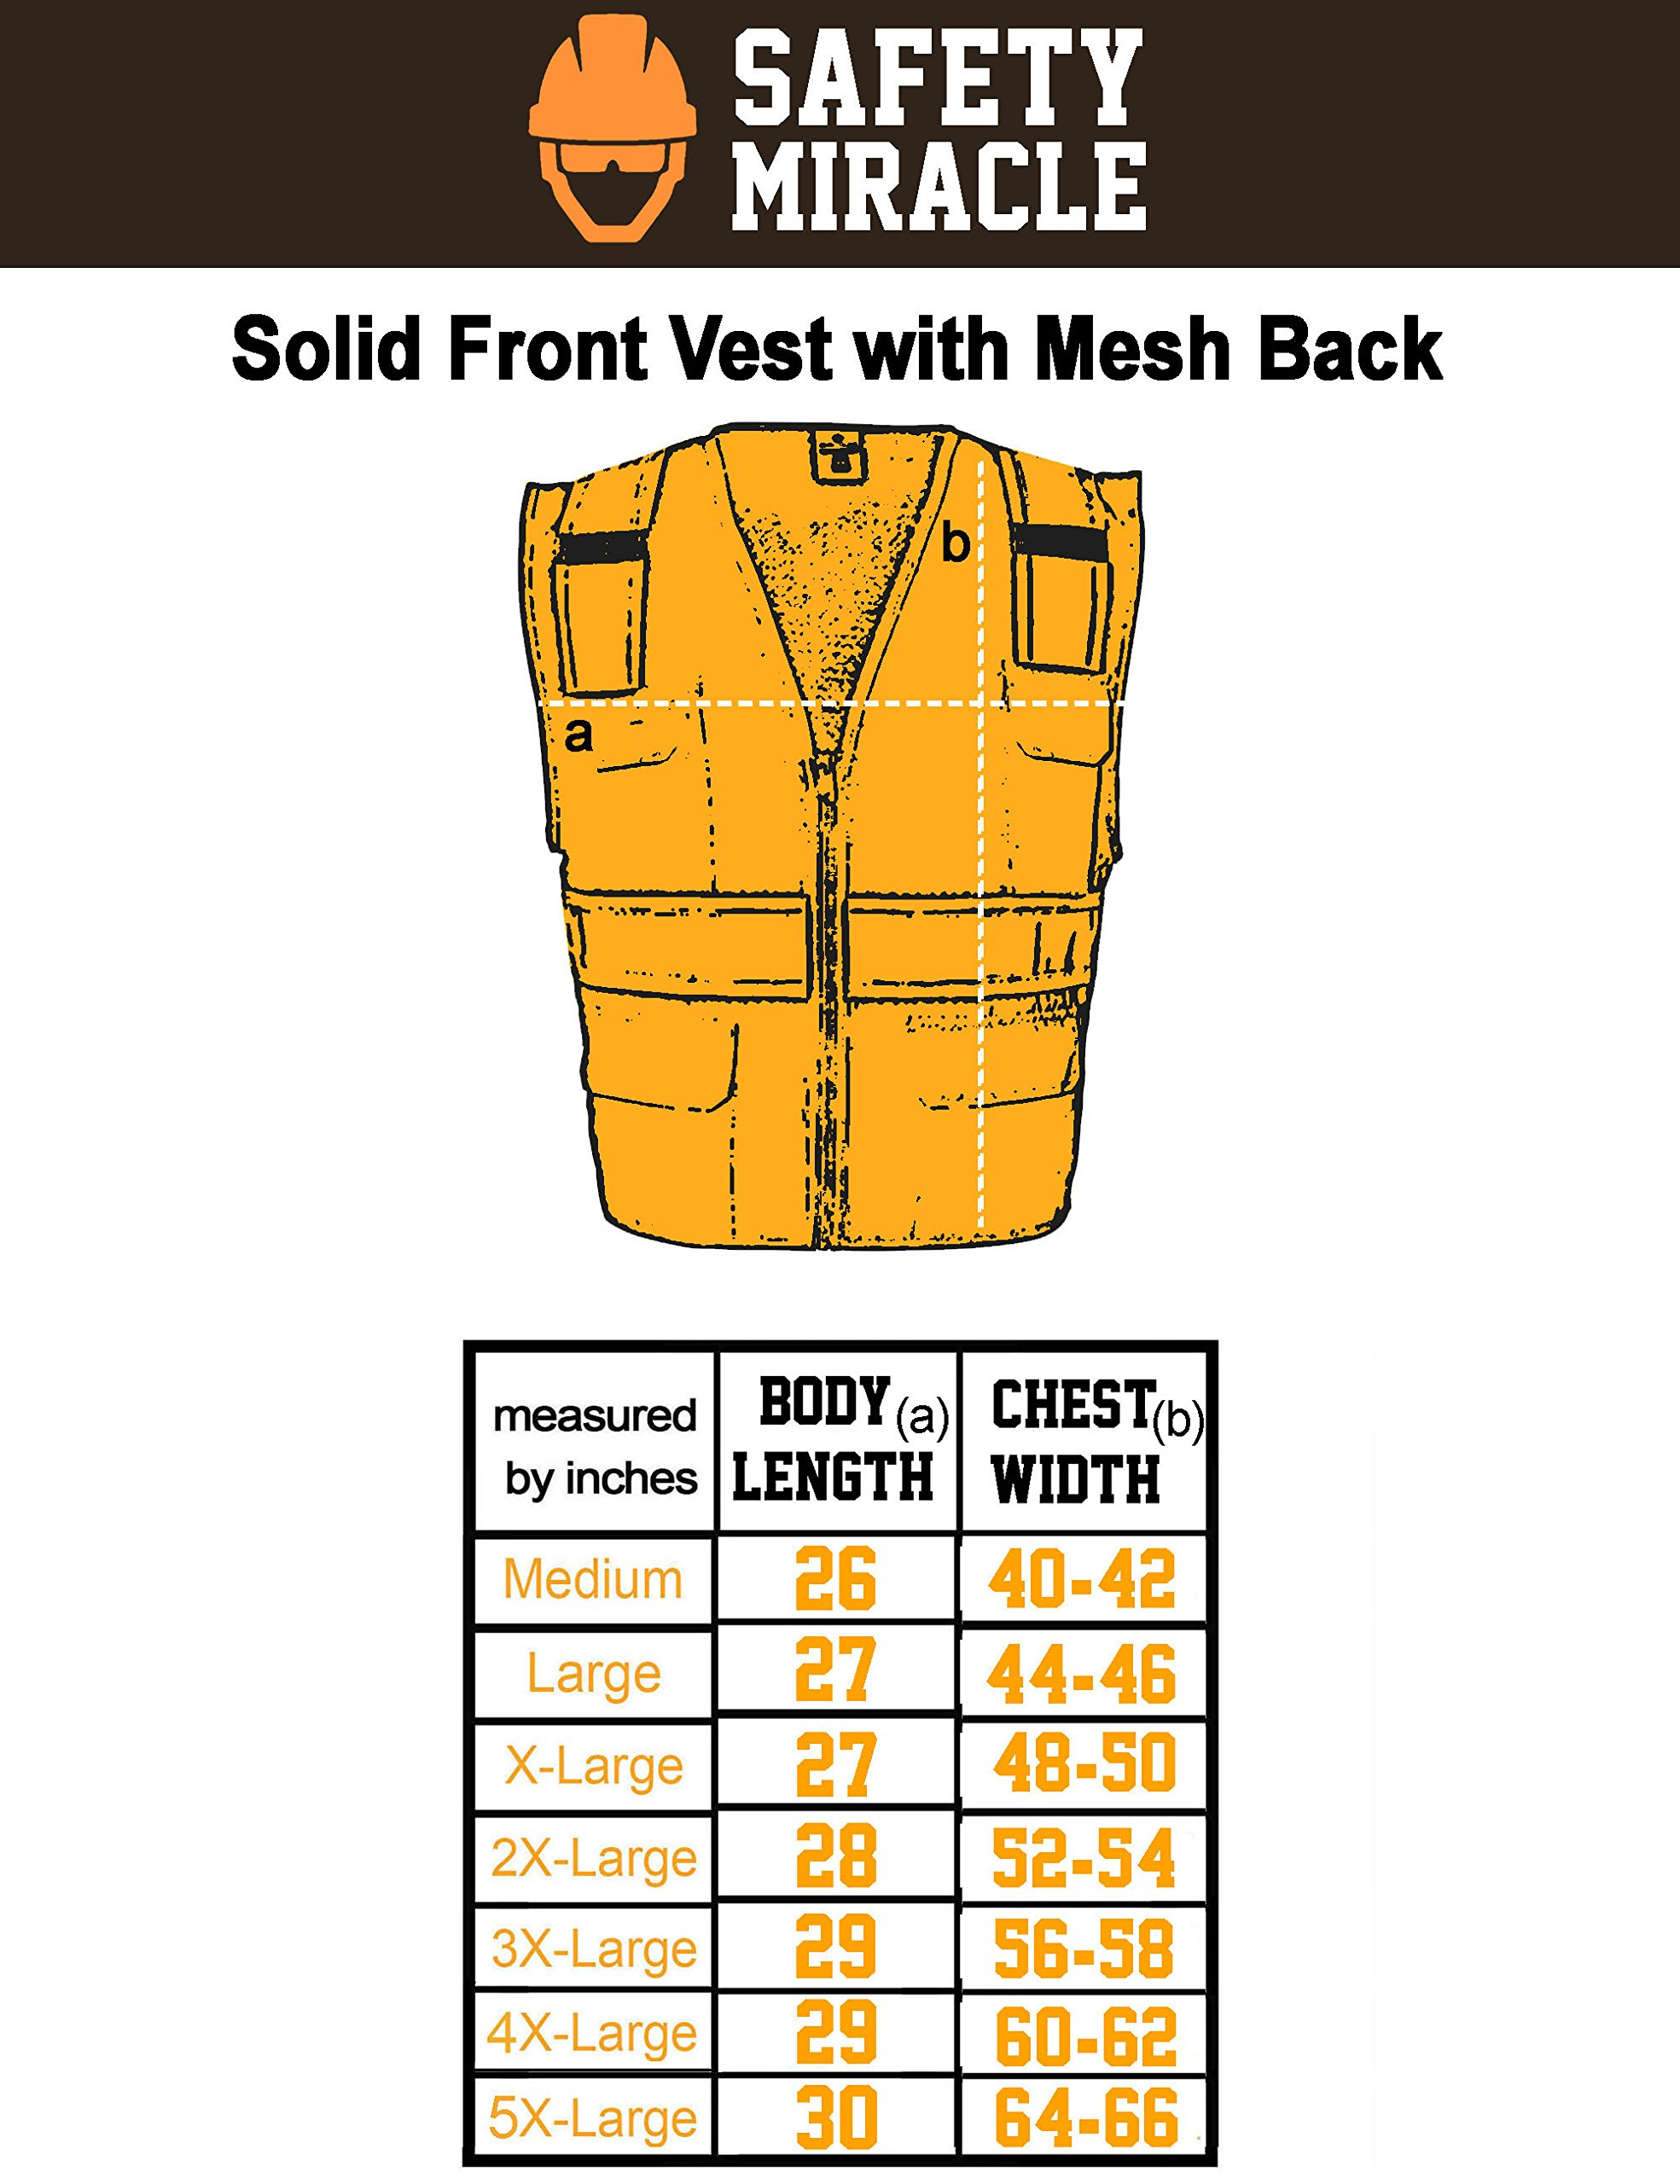 Custom Safety Reflective Mesh Vest with Zipper - Personalized Drone Pilot Vest by Safety Miracle (Image #5)